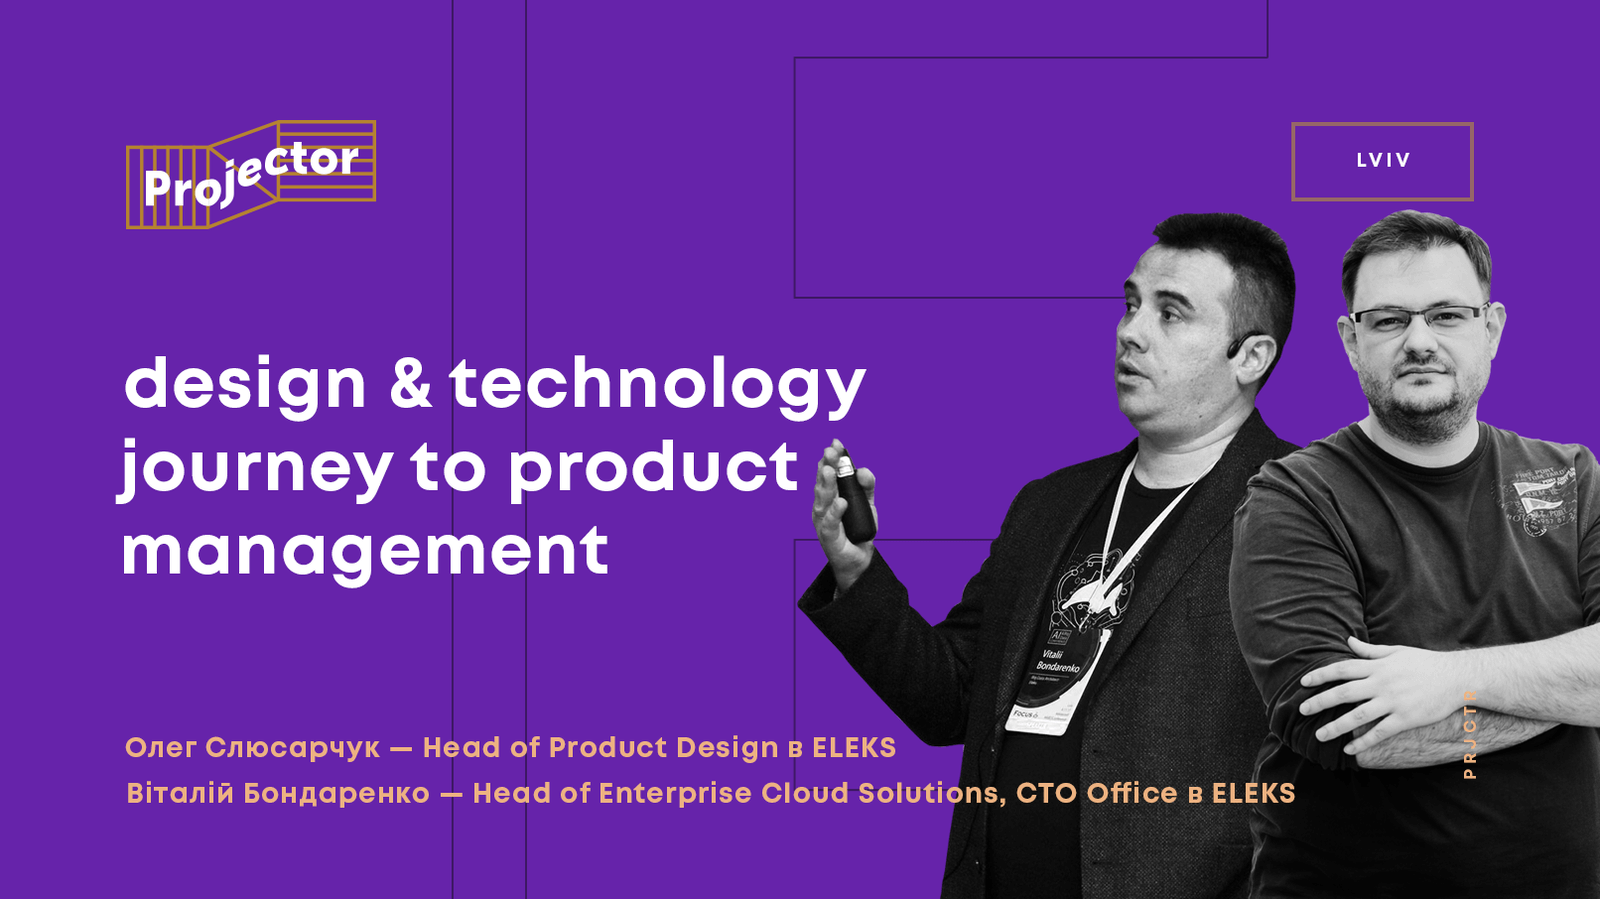 DESIGN & TECHNOLOGY JOURNEY TO PRODUCT MANAGEMENT